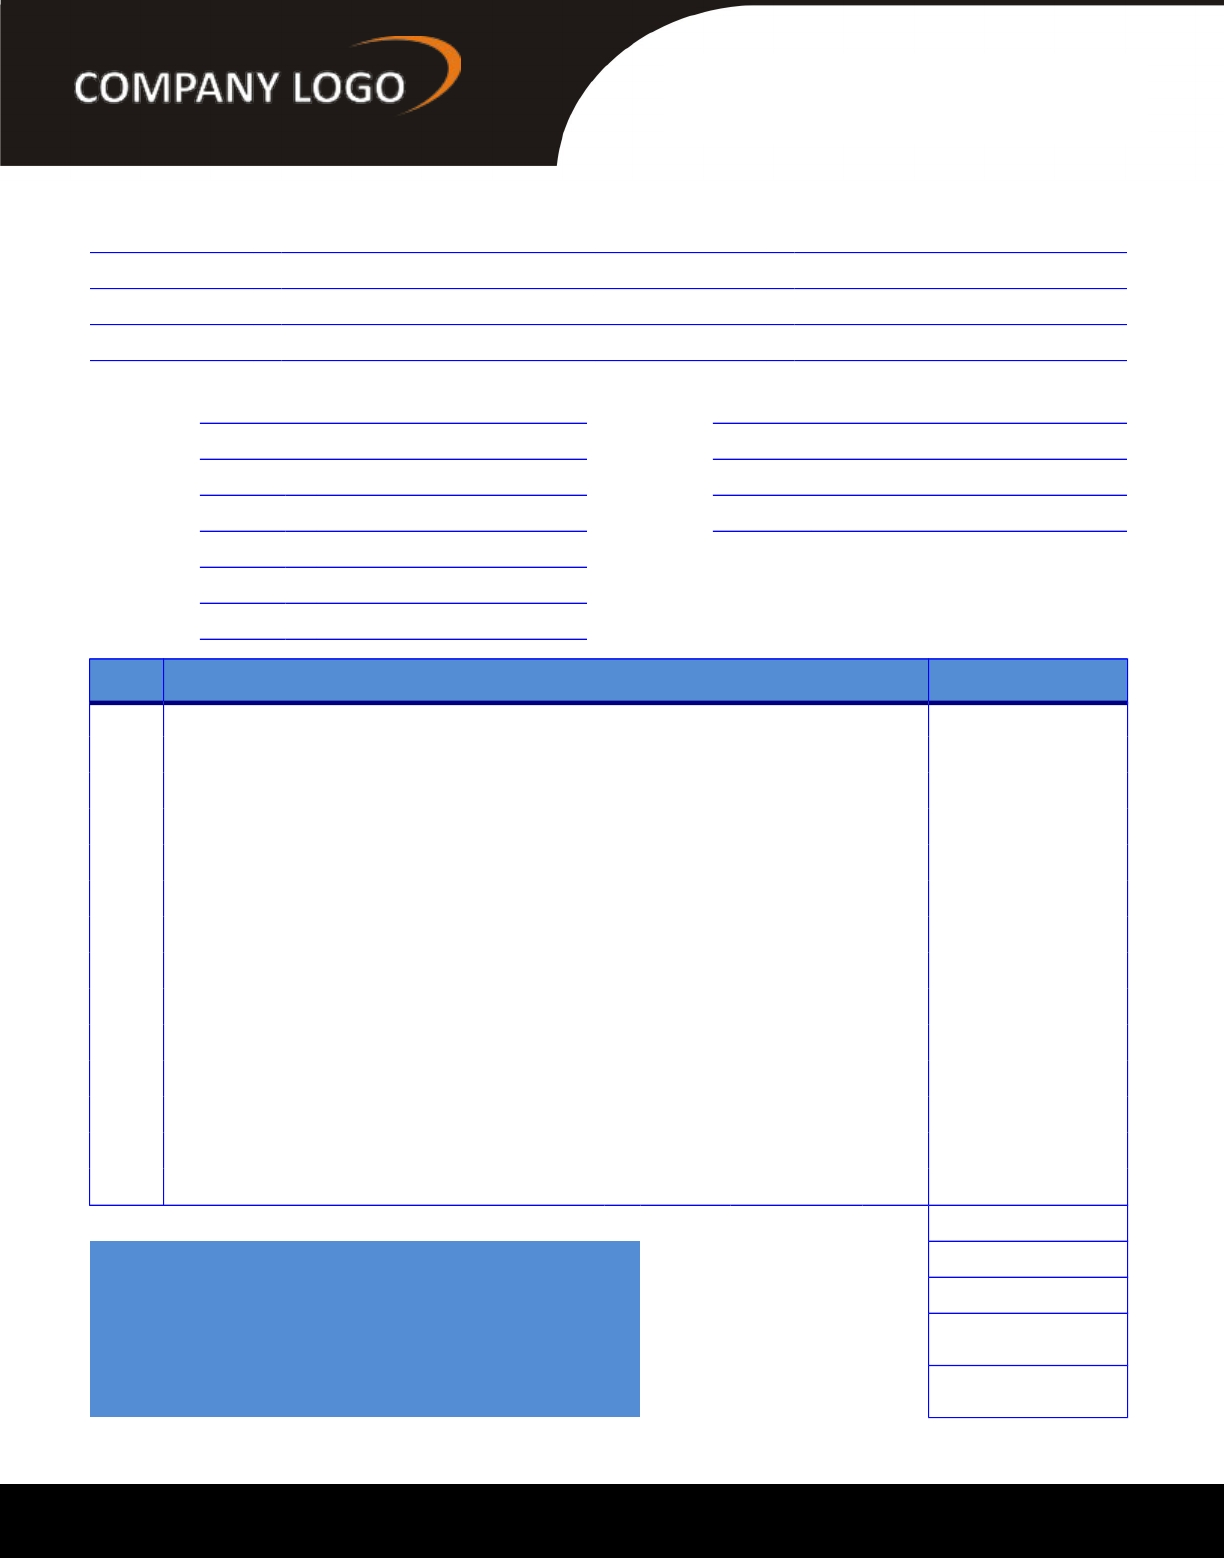 free graphic design invoice template   doc|pdf | 1 page(s) freelance graphic design invoice template